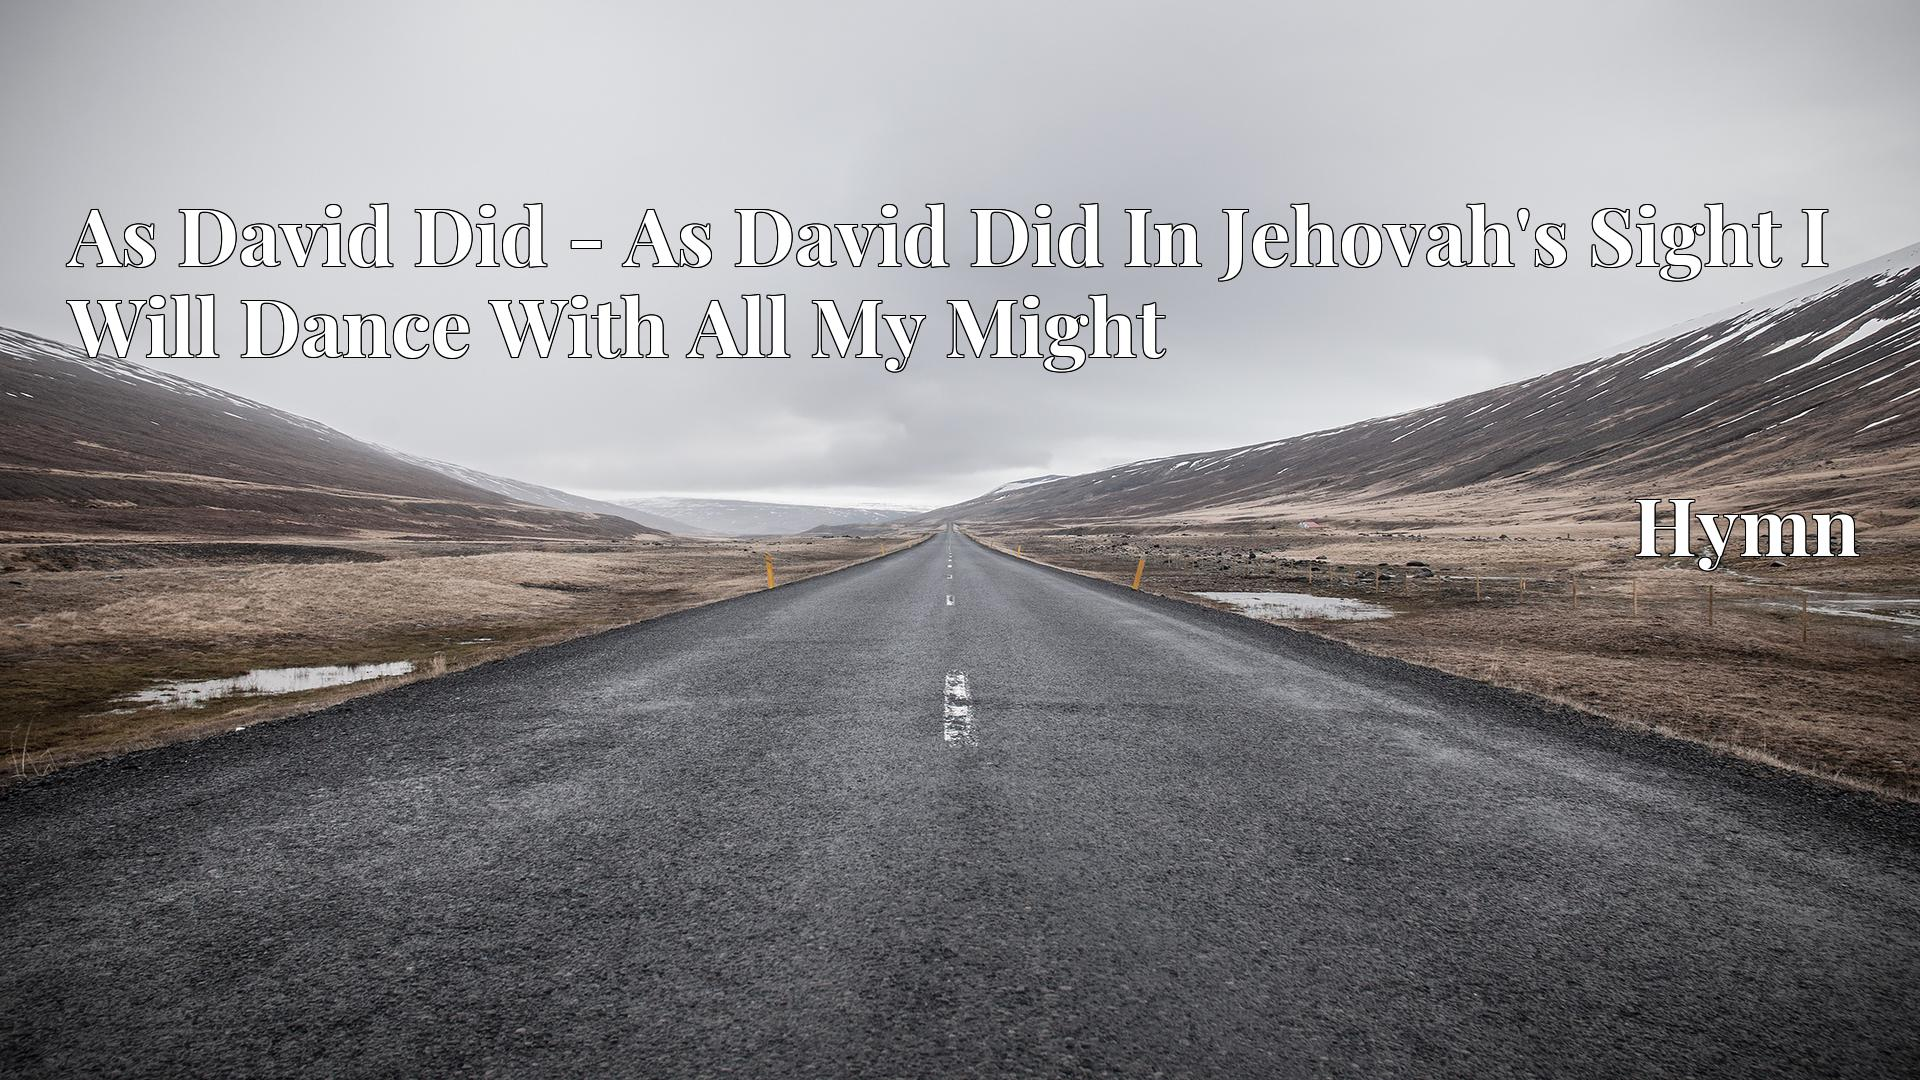 As David Did - As David Did In Jehovah's Sight I Will Dance With All My Might - Hymn